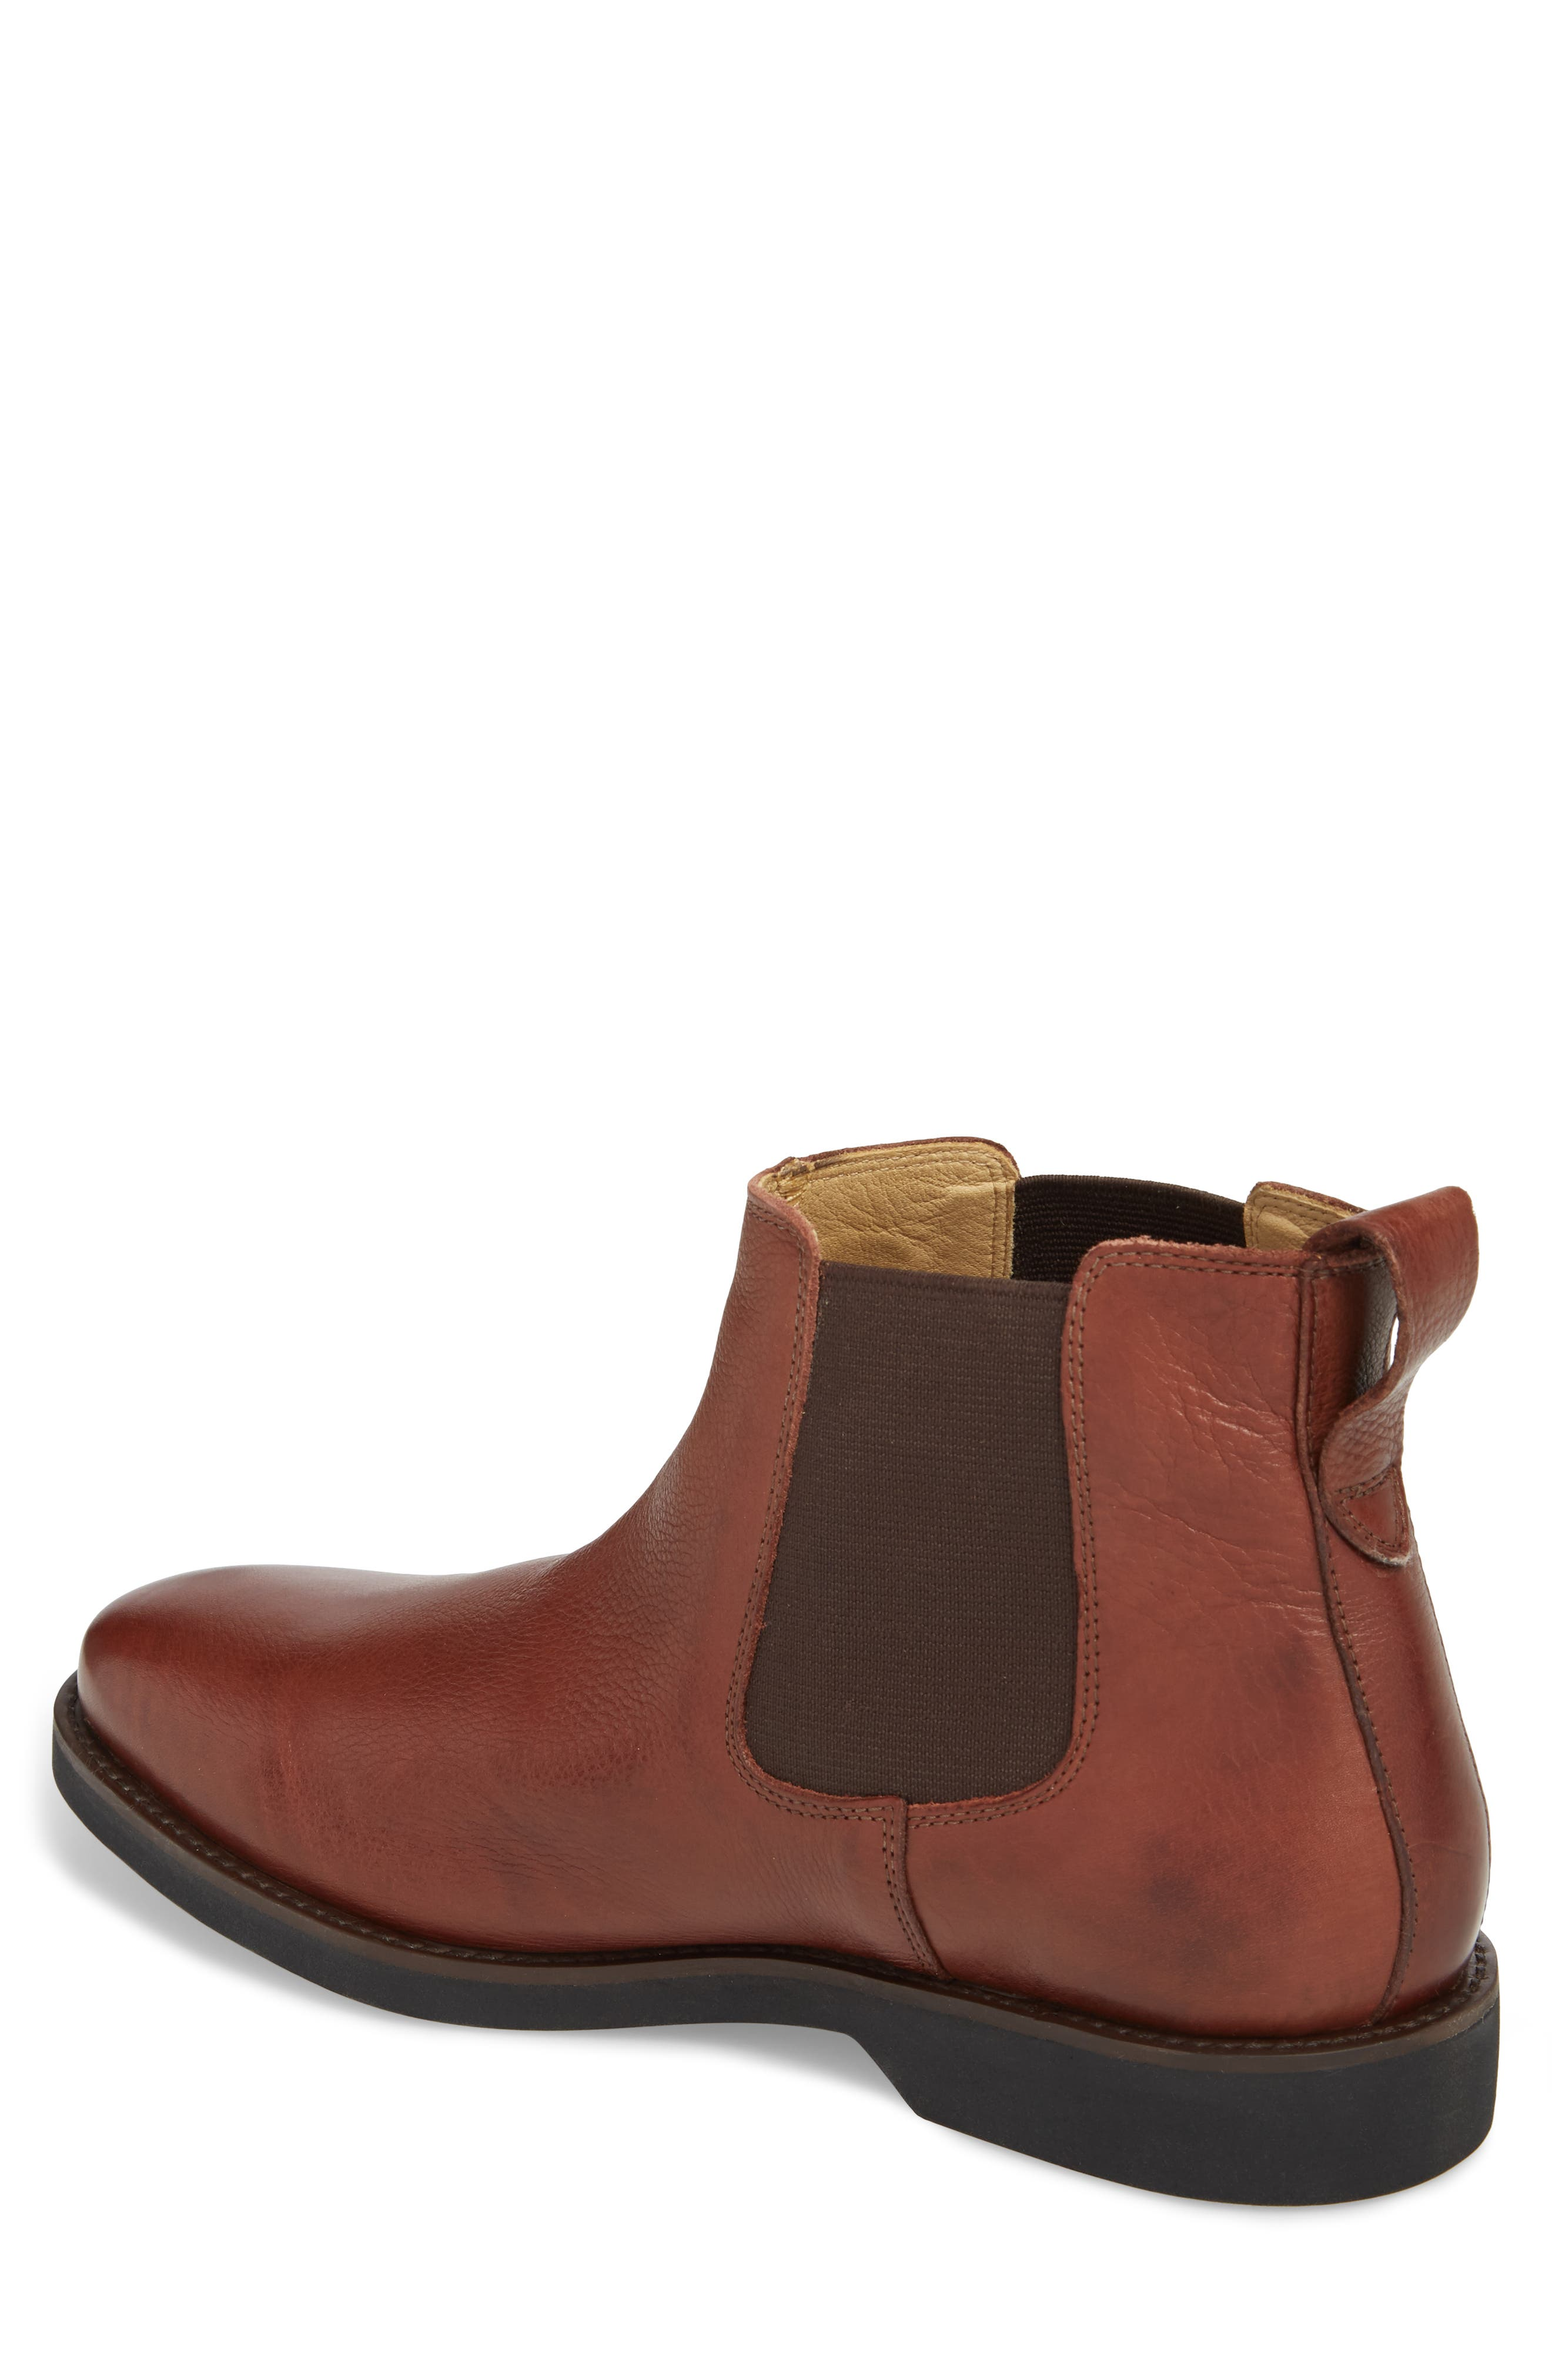 Cardoso Chelsea Boot,                             Alternate thumbnail 2, color,                             Floater Pinaho Leather